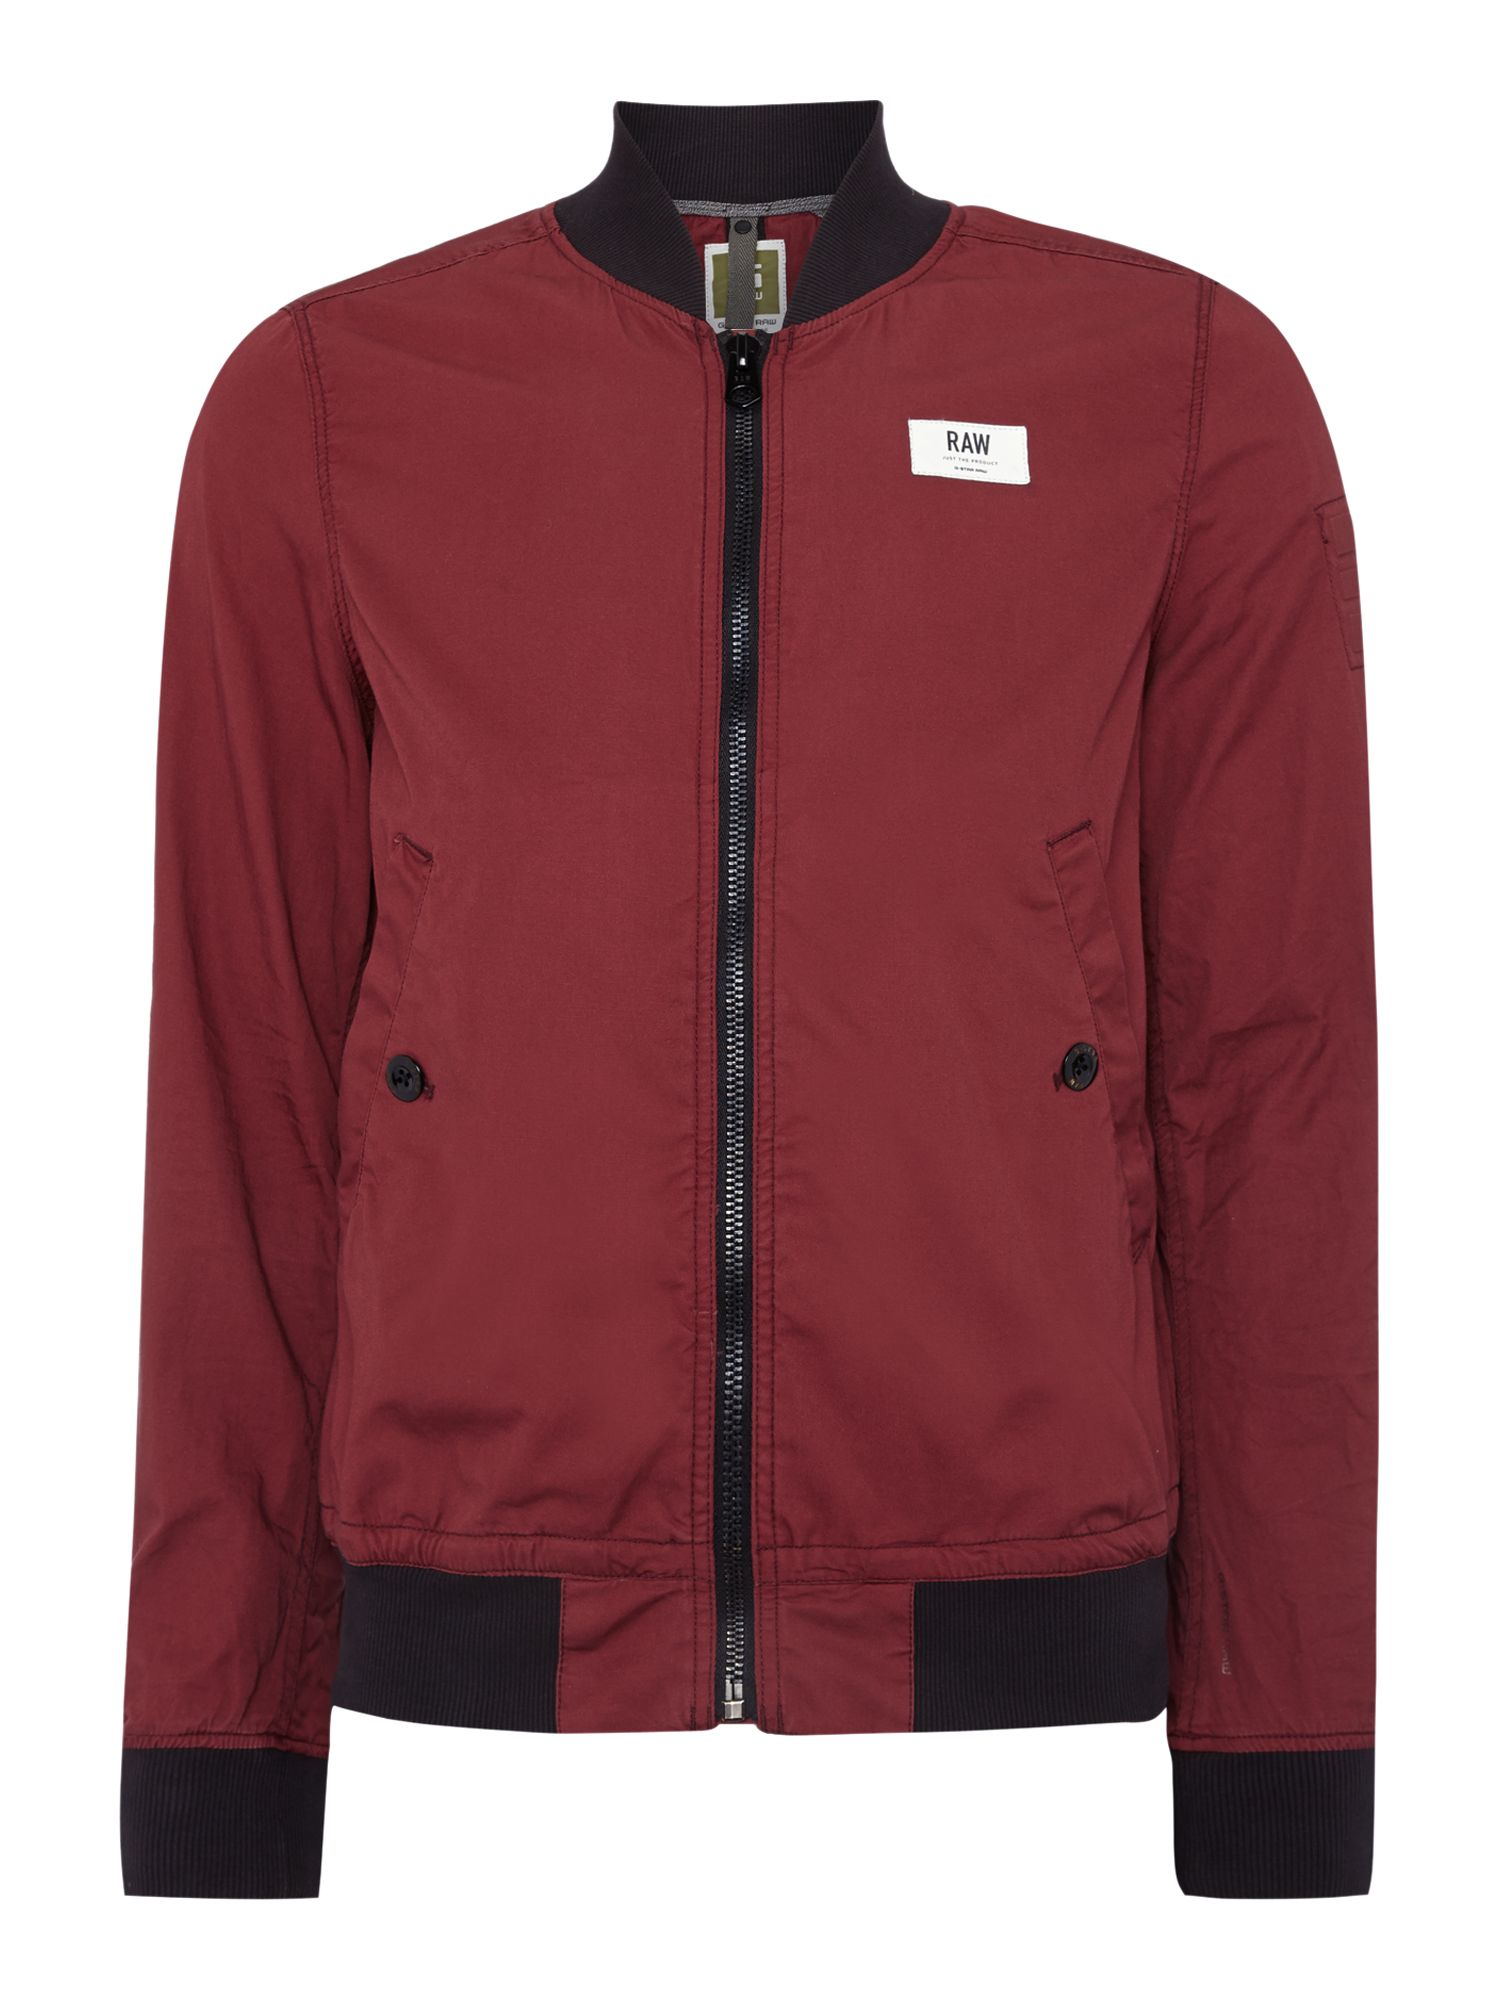 g star raw casual showerproof full zip bomber jacket in red for men cherry lyst. Black Bedroom Furniture Sets. Home Design Ideas